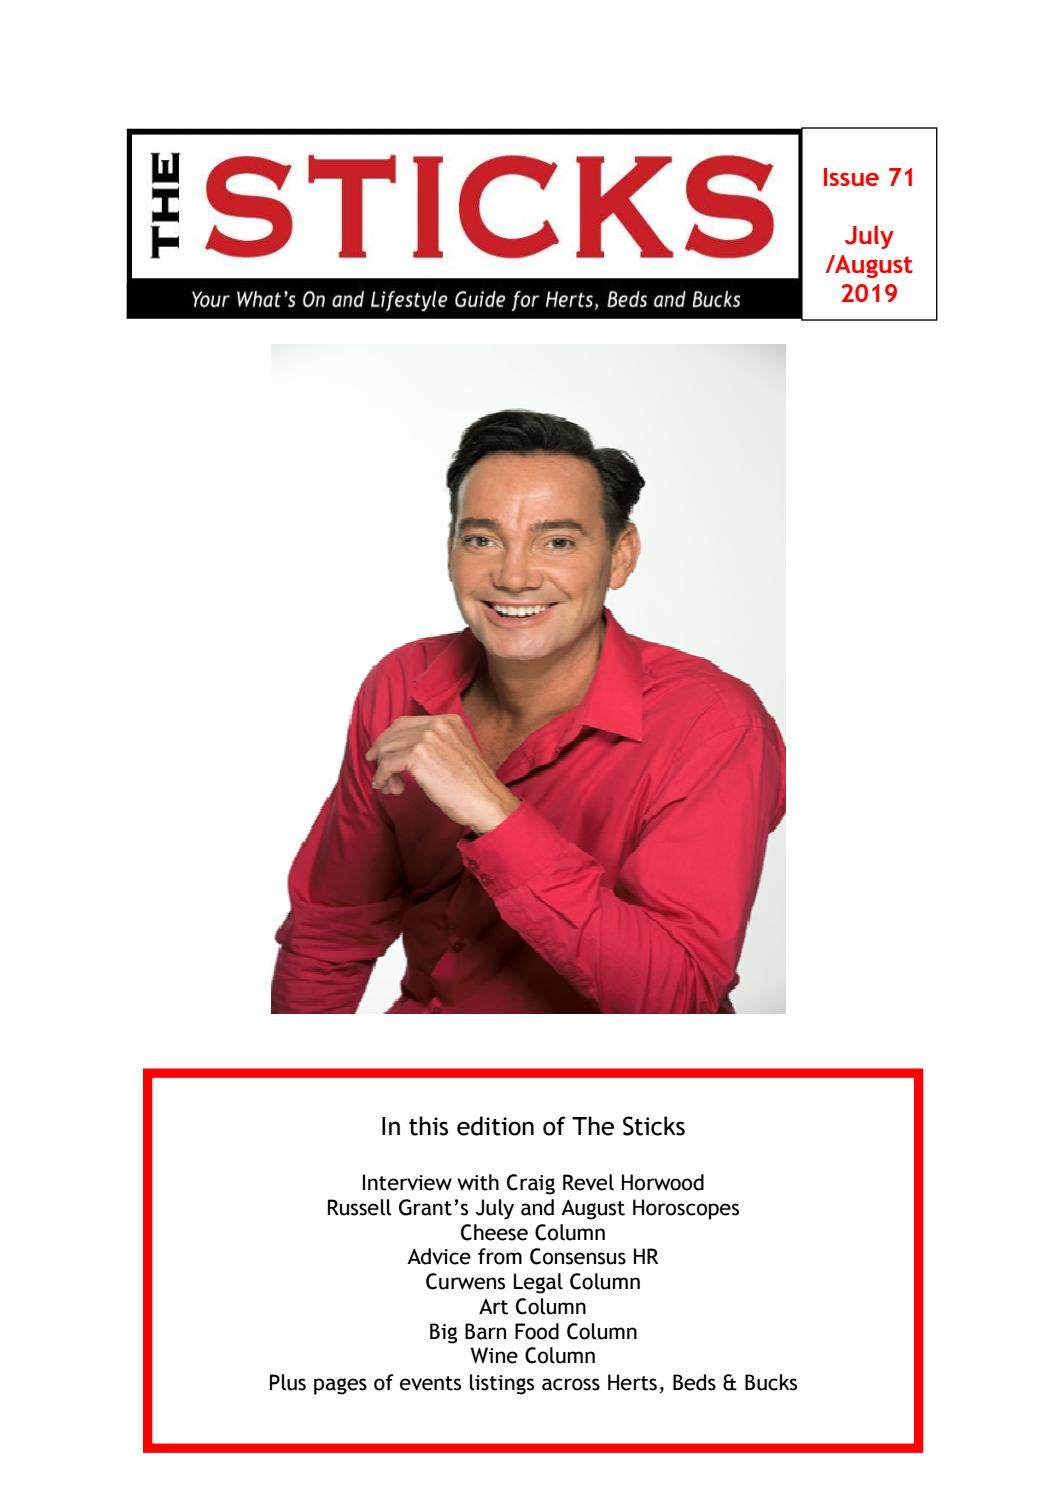 Sticks Magazine July /August 2019 by The Sticks - issuu